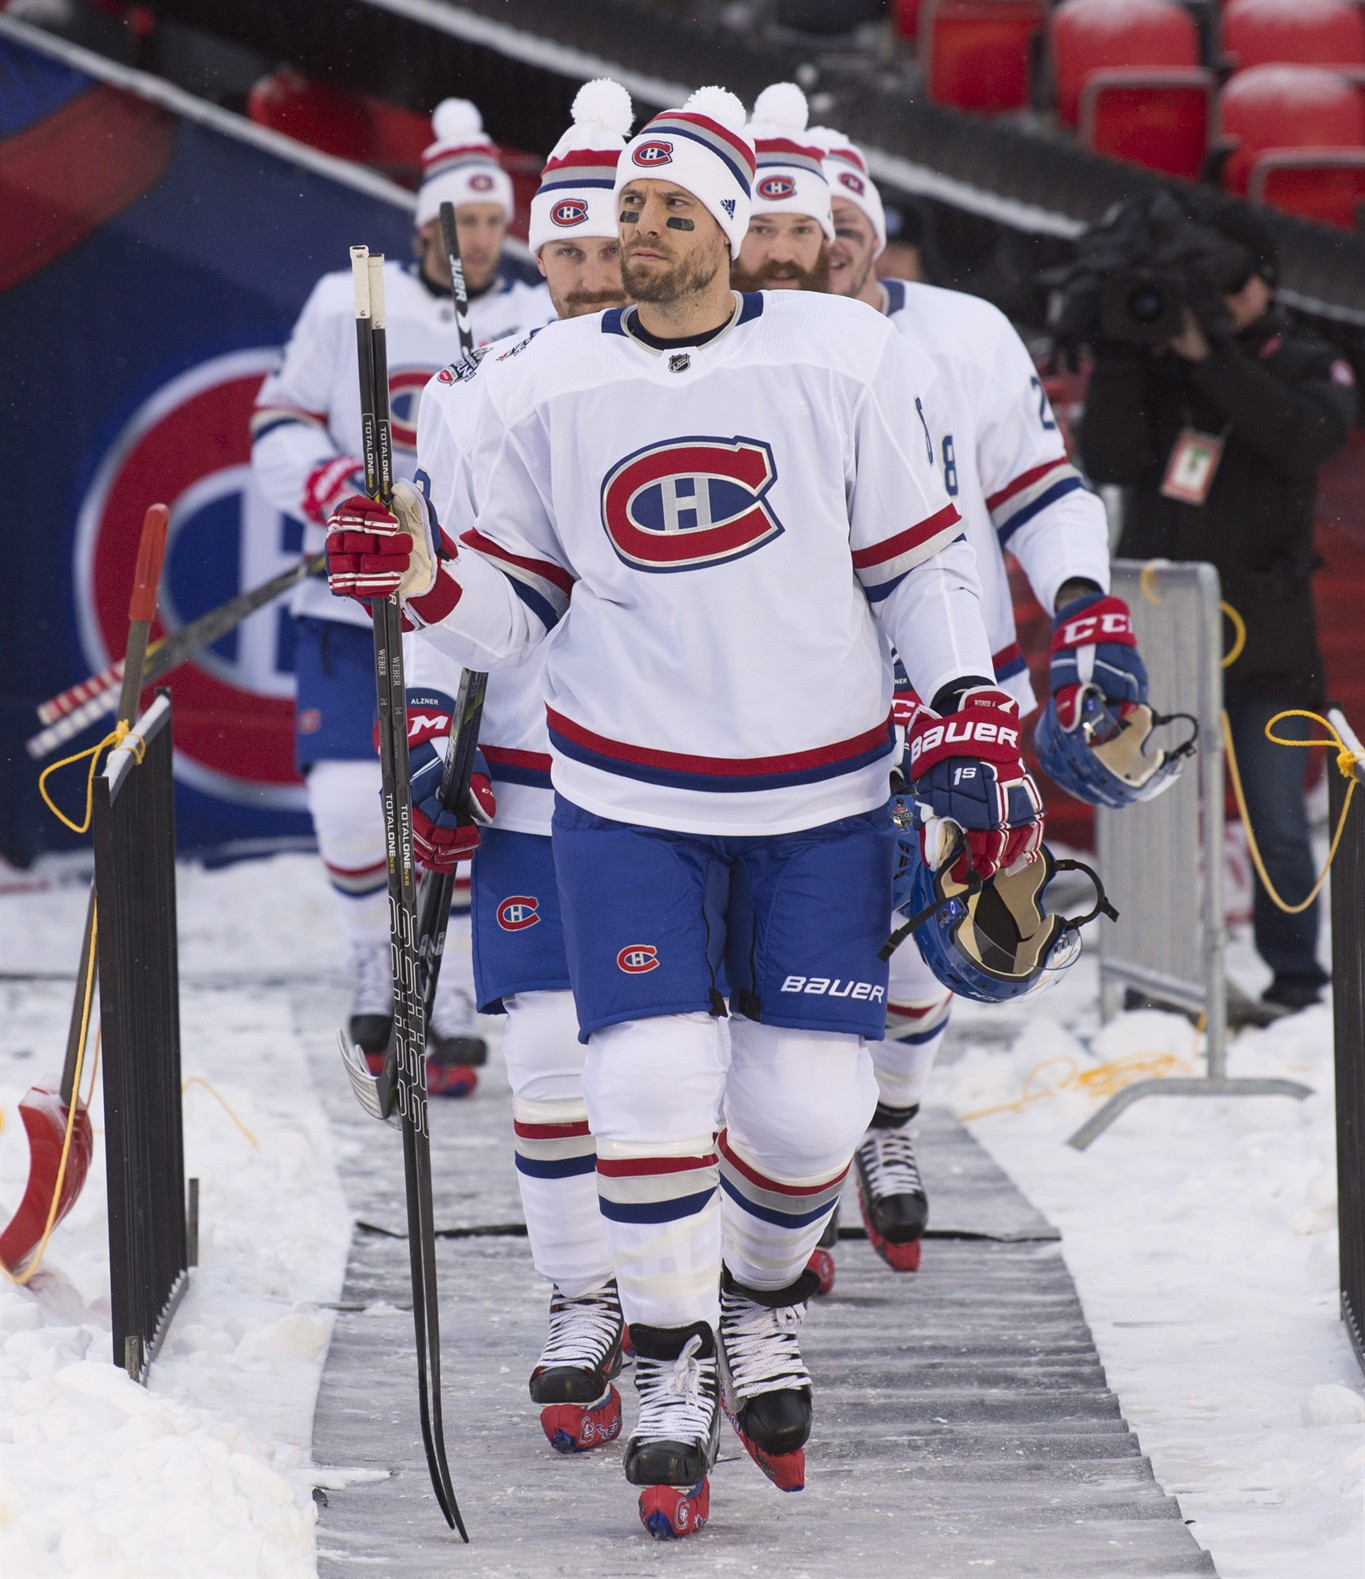 Montreal Canadiens defenceman Shea Weber leads the Montreal Canadiens out  to the ice for an outdoor practice 136c15678